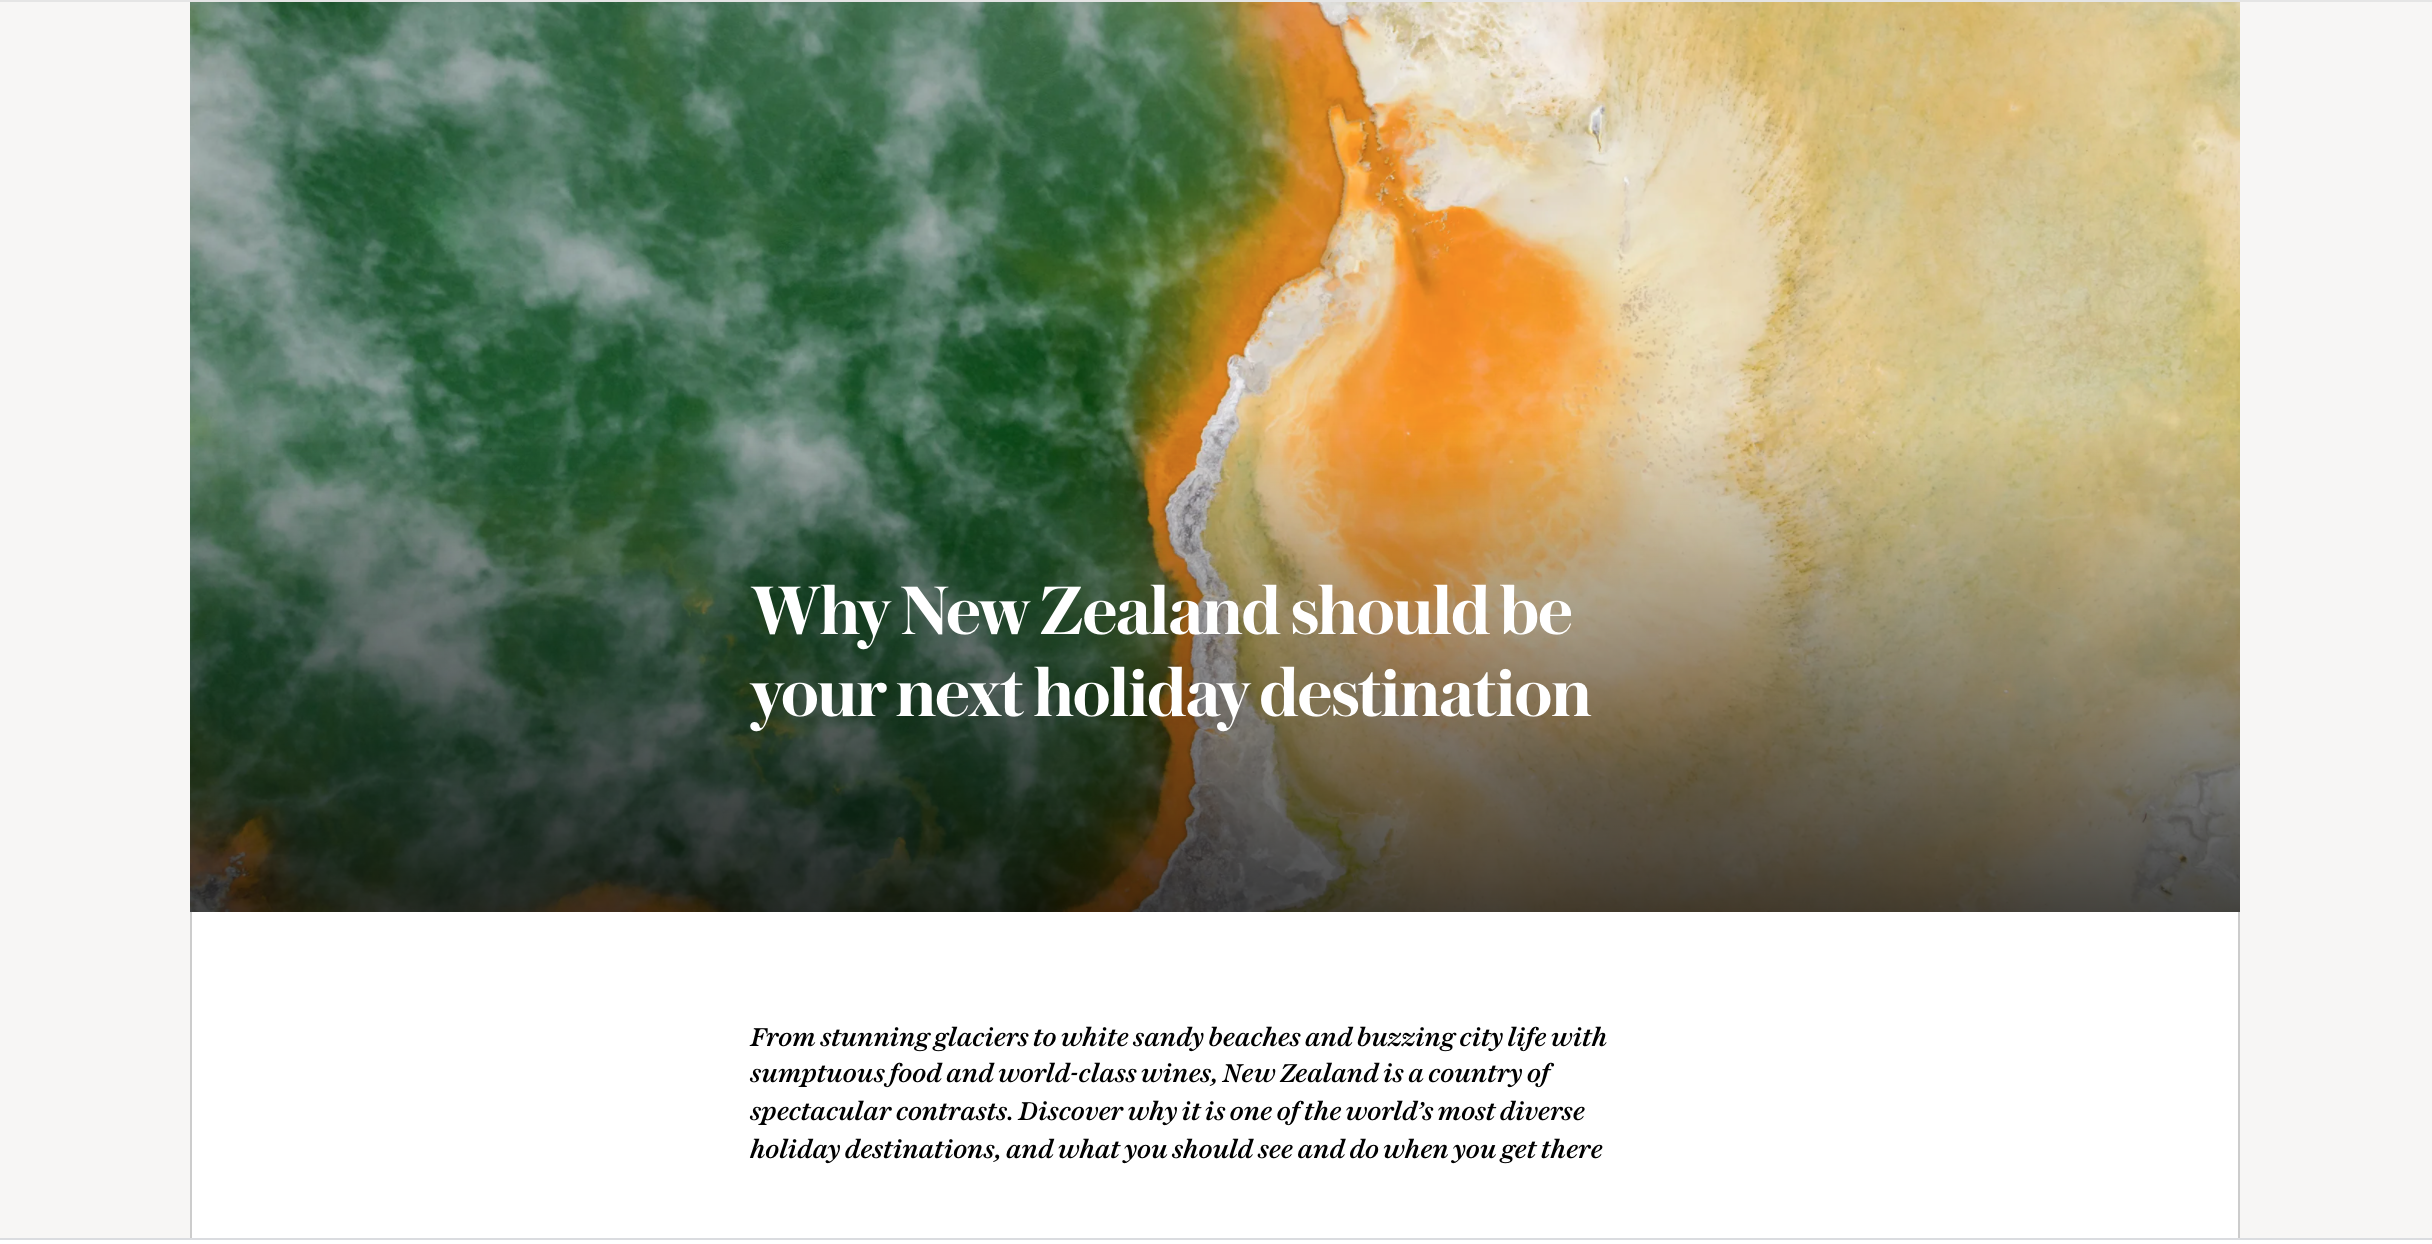 Why New Zealand should be your next holiday destination